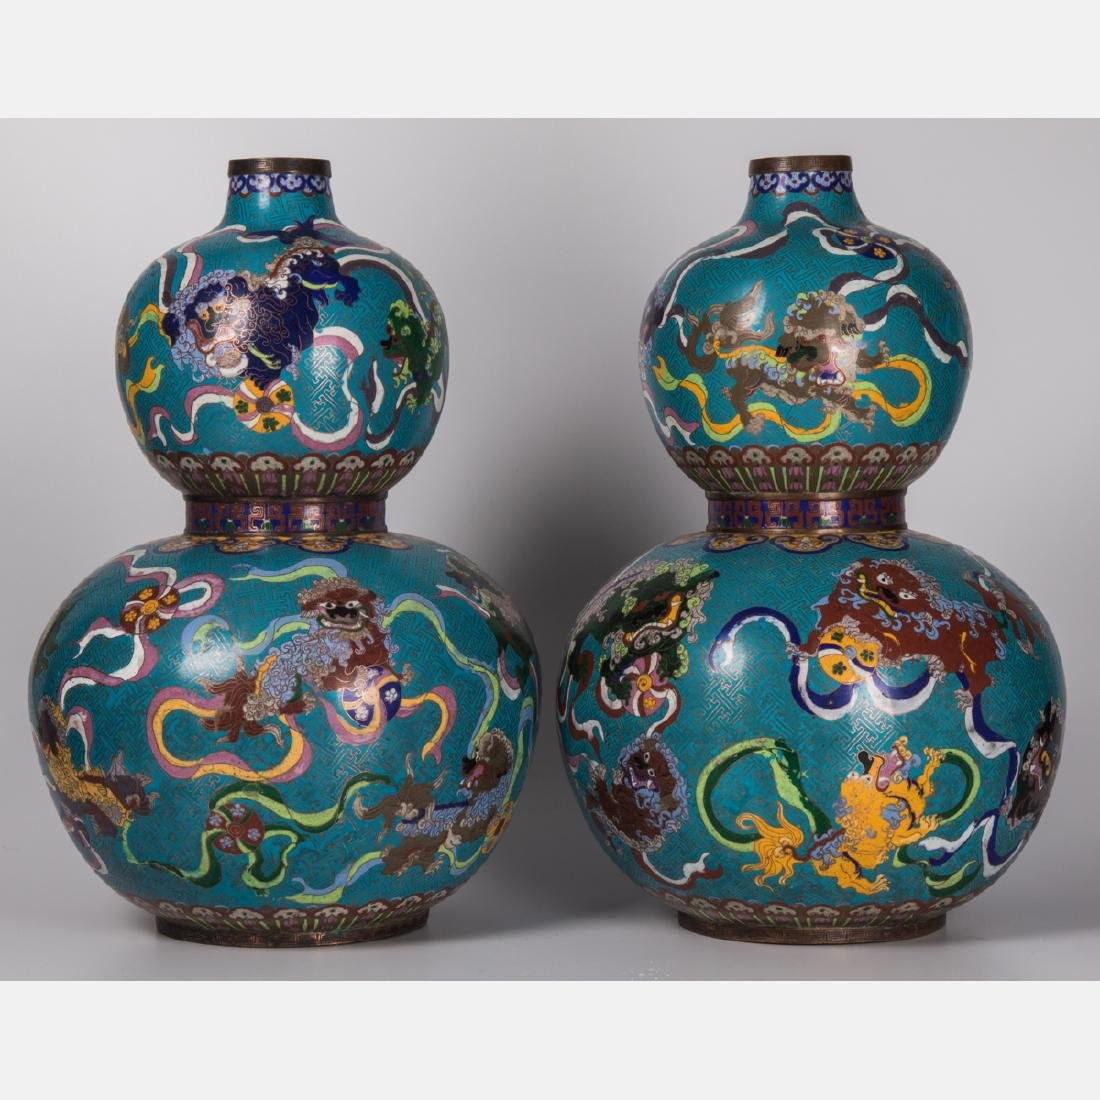 A Pair of Chinese Cloisonné, Double Gourd Vases, 20th